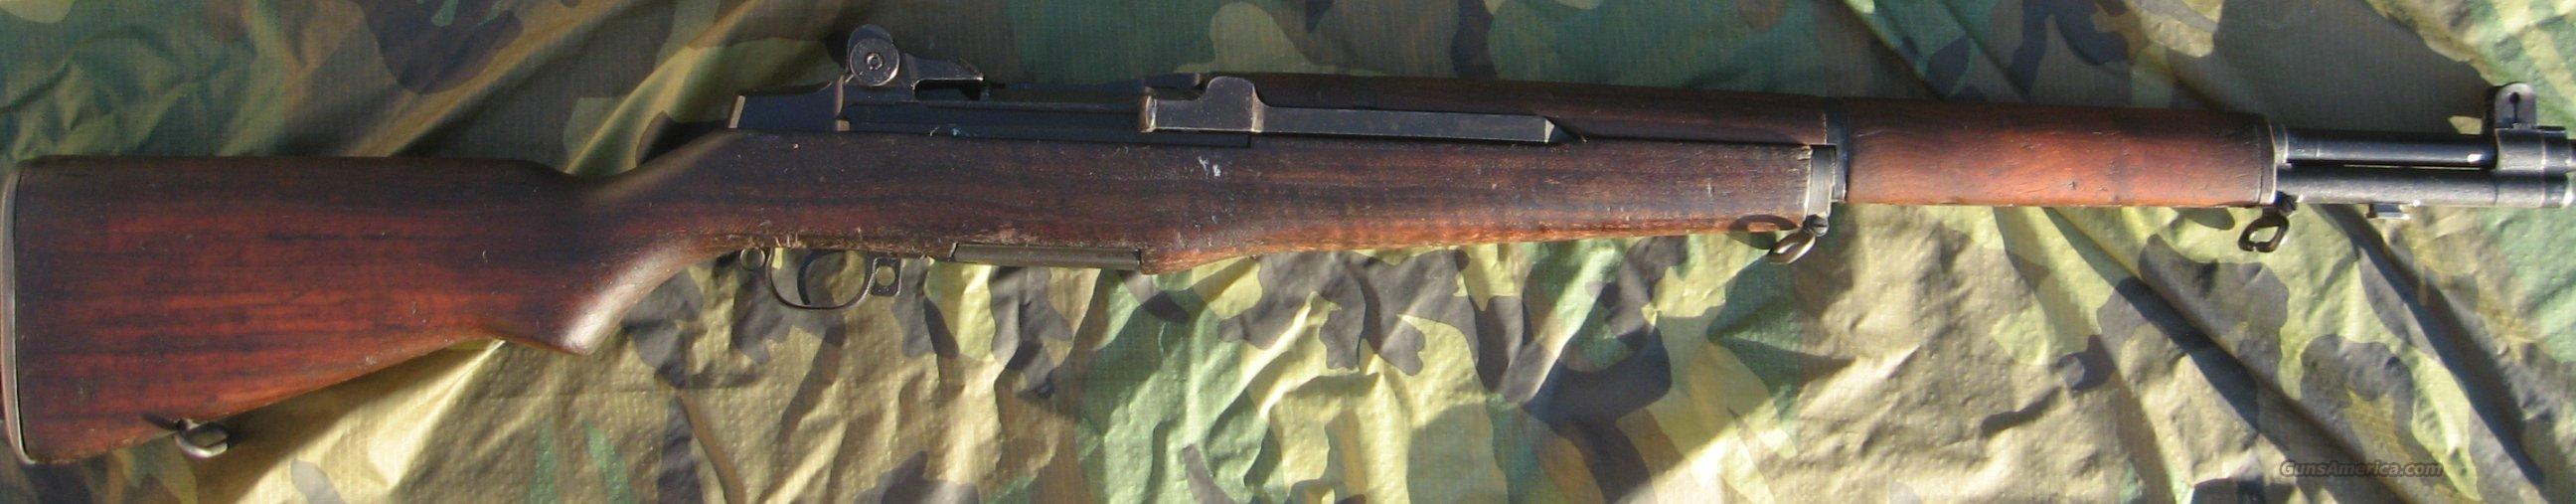 Garand M1 Rifle  Guns > Rifles > Military Misc. Rifles US > M1 Garand